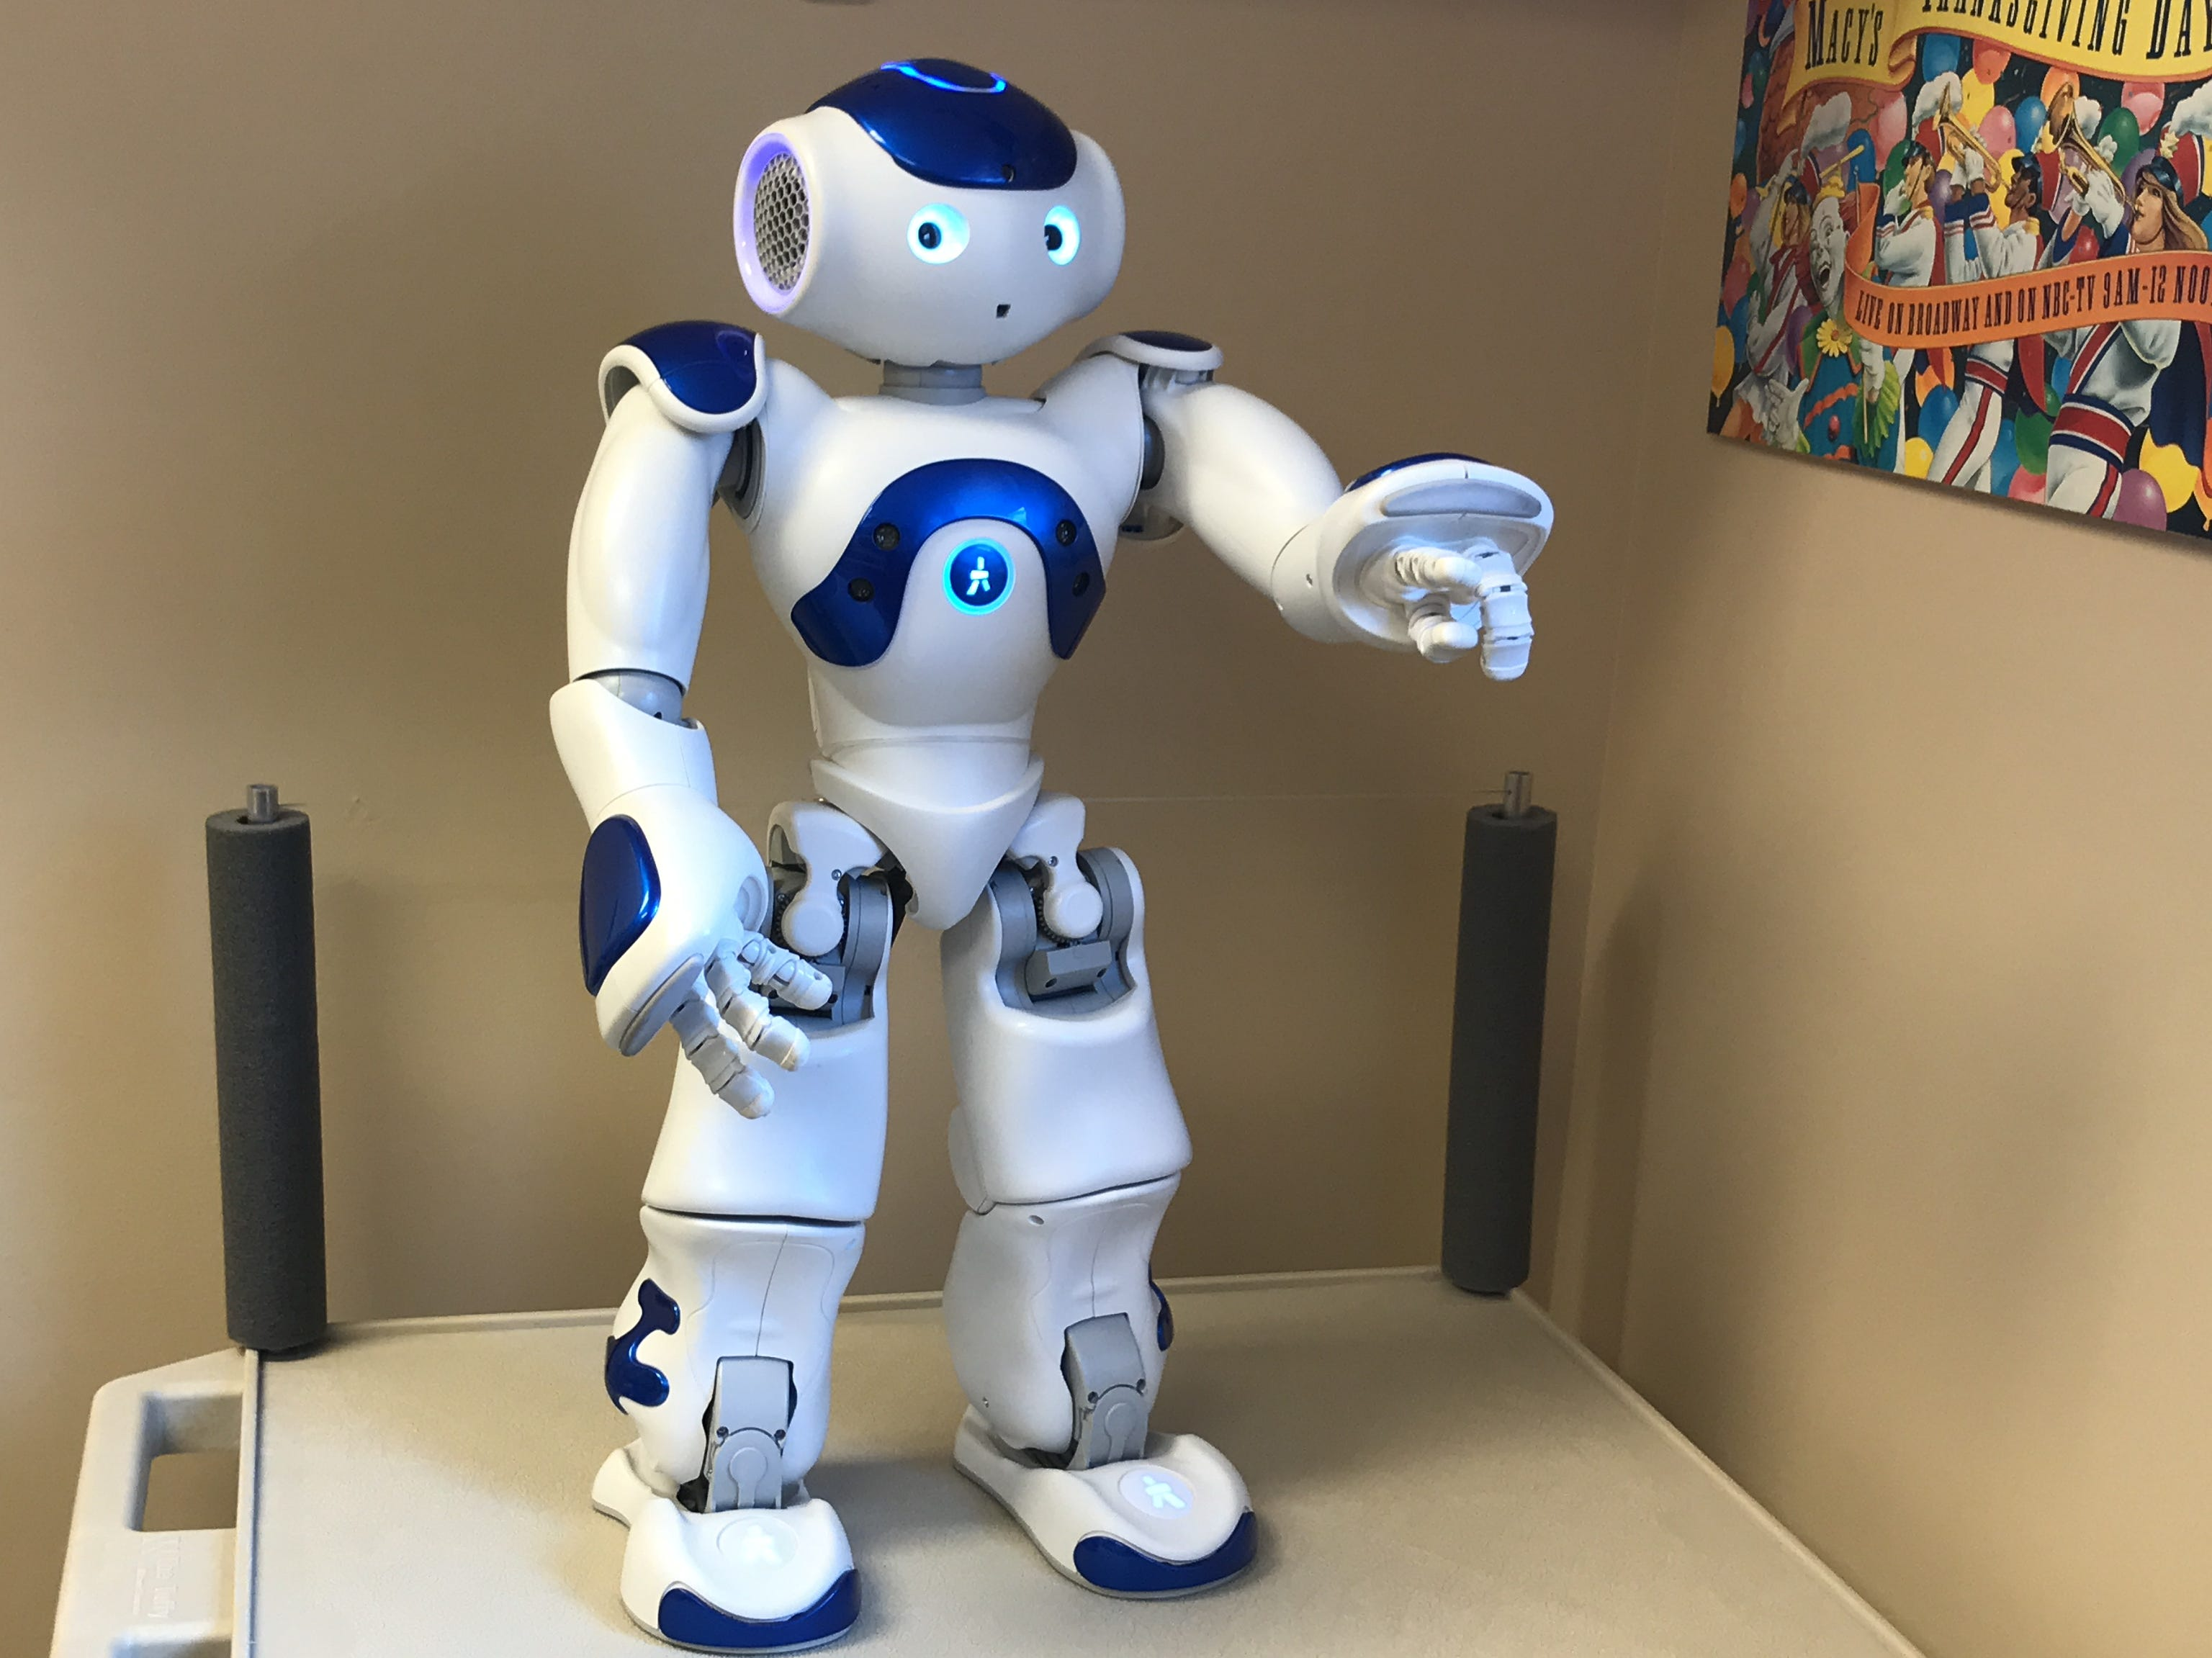 On staff for four years at Olin Dental Group, Medithe robot isprogrammed to act asa companion along side children in a dental operatory. Medi is able to speak to children at their level and decrease their concerns, anxietyand fears when they come to the dentist.